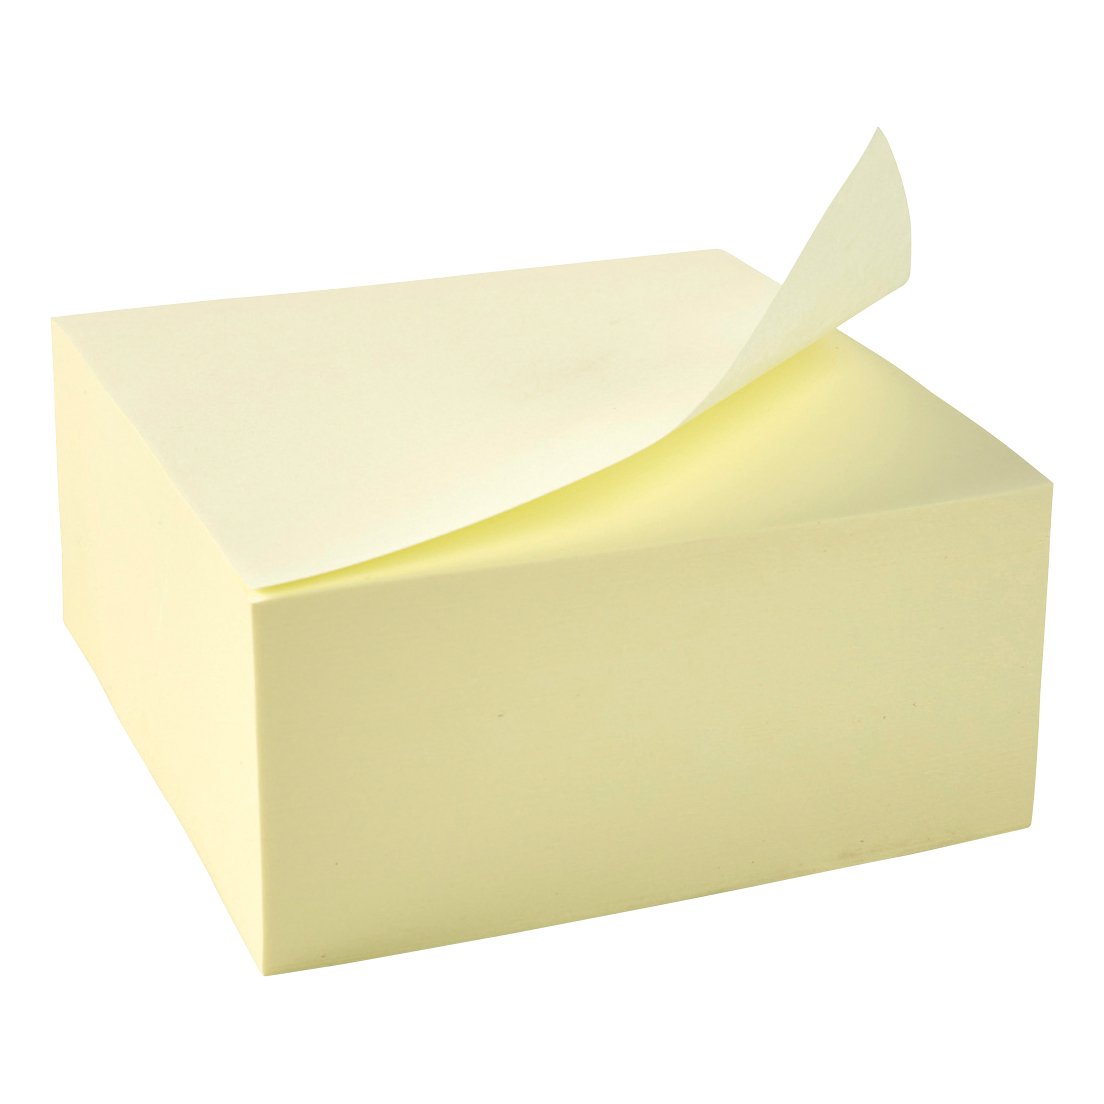 Coloured 5 Star Office Re-Move Notes Cube Pad of 400 Sheets 76x76mm Yellow